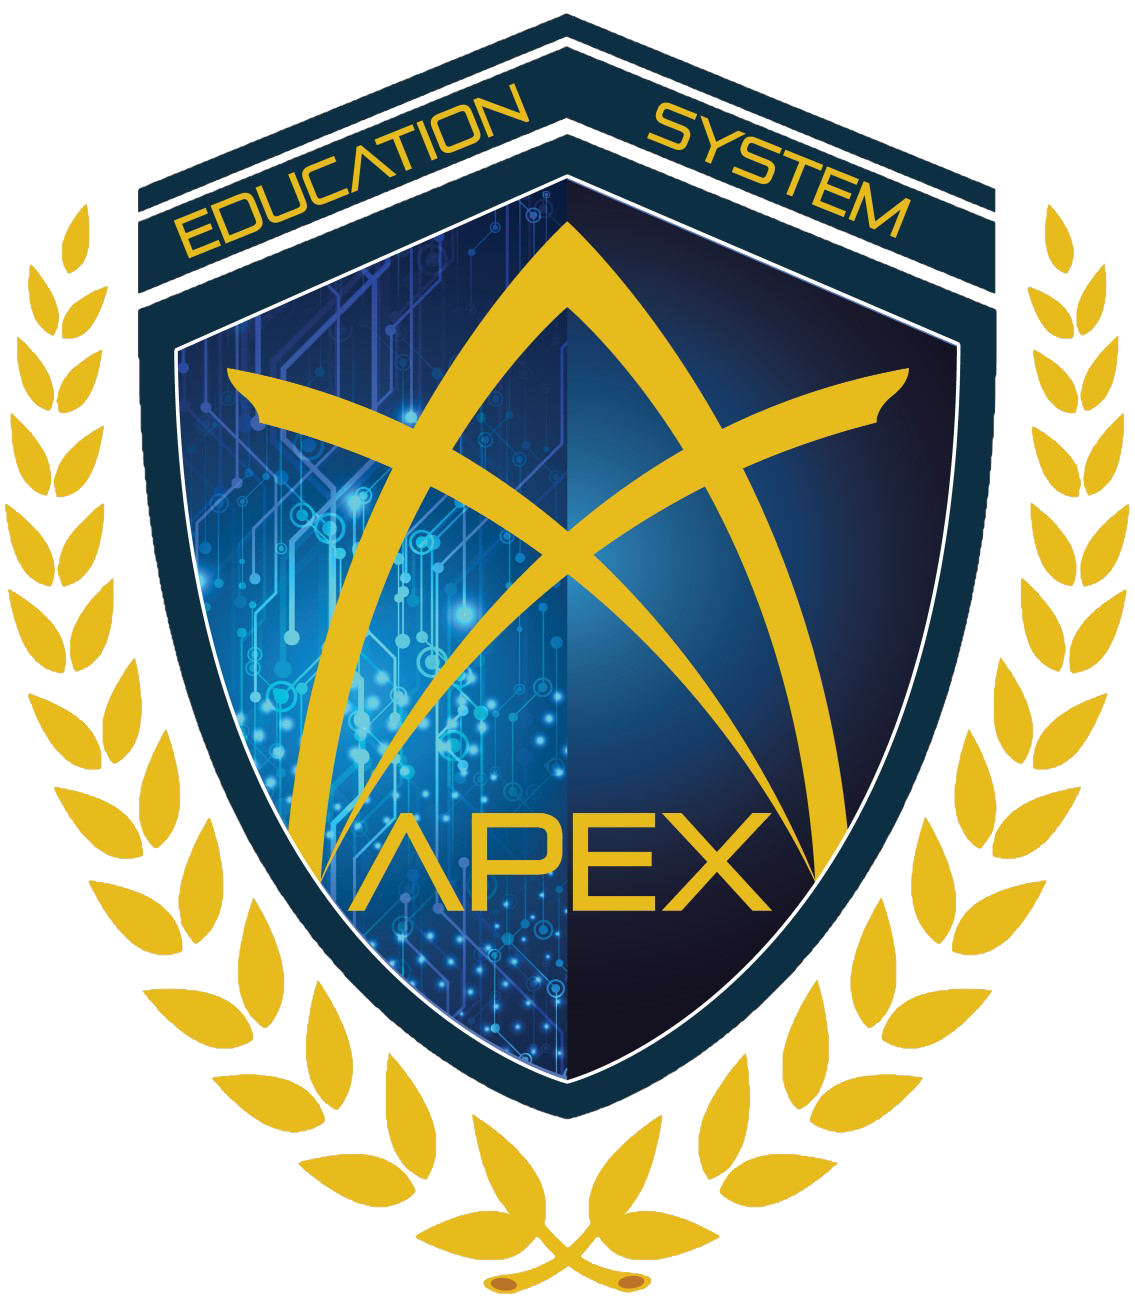 APEX Education System